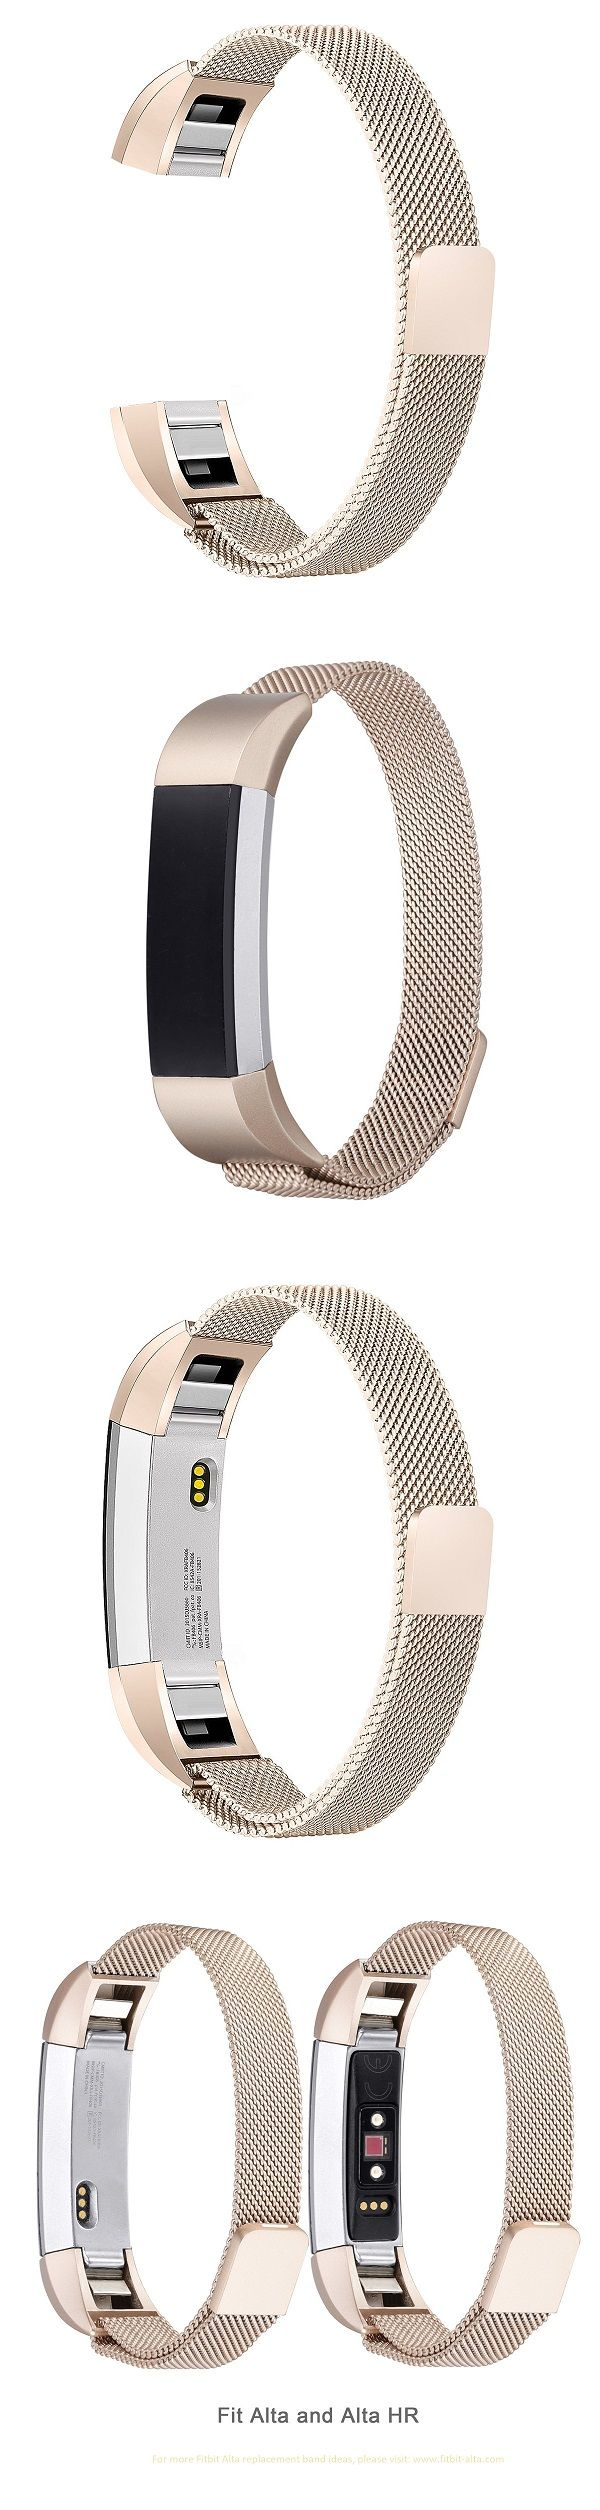 bayite Milanese Loop Stainless Steel Metal Bands for Fitbit Alta HR and Fitbit Alta - Champagne Gold  #fitbit #fitbitalta #fitbitaltahr #fitbitaltabands #altahr